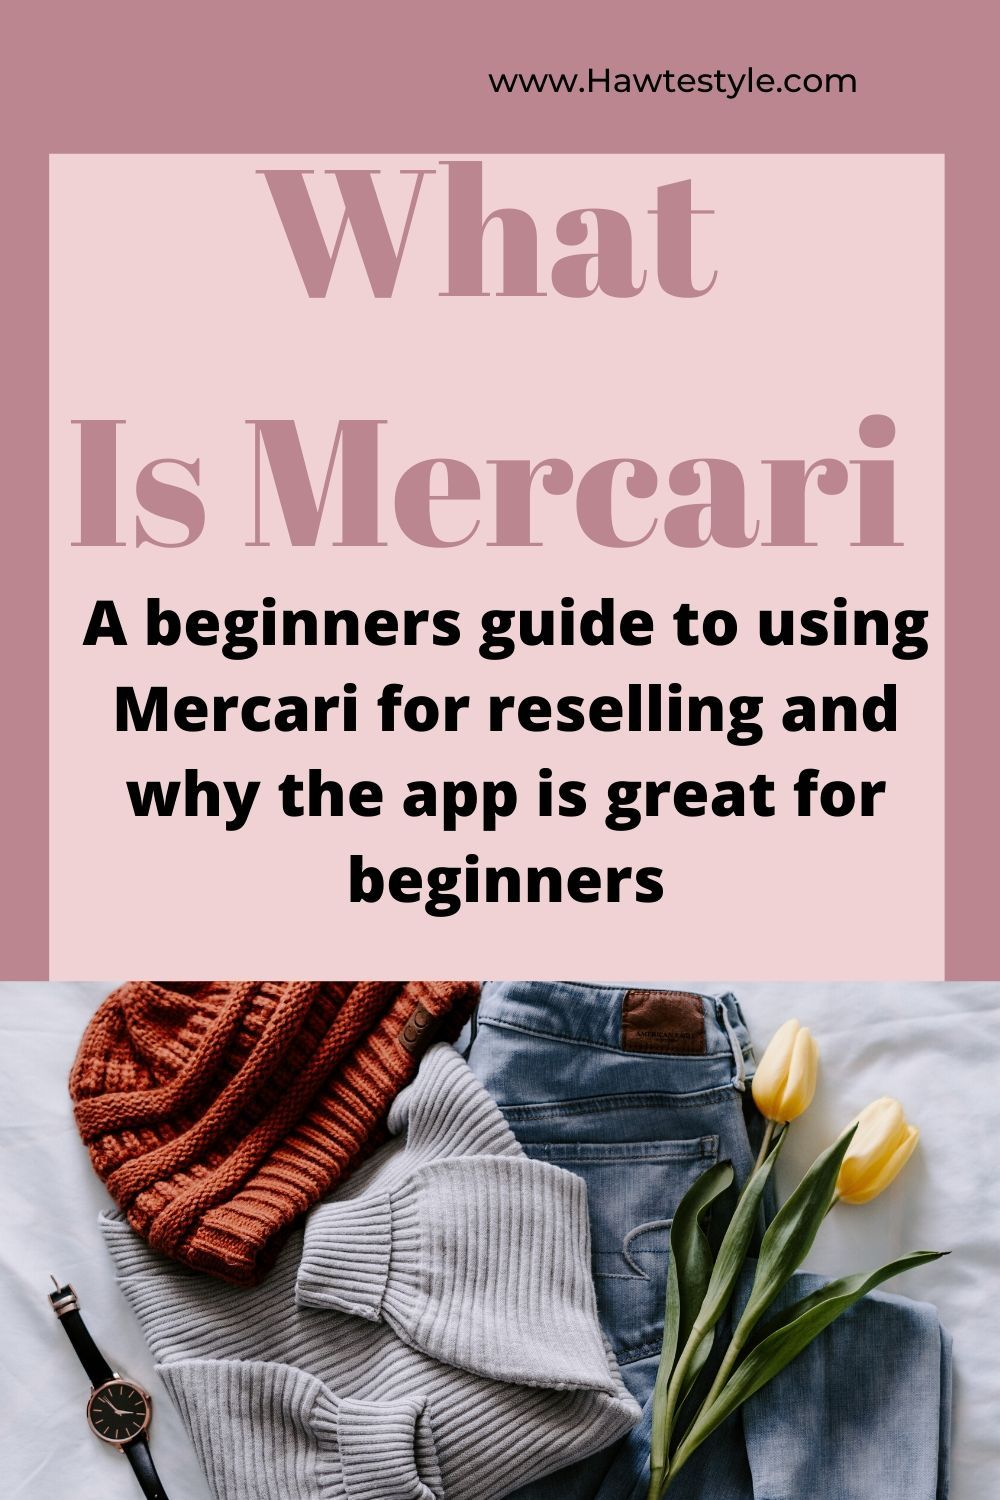 How To Sell On Mercari As A Beginner Mercari Things To Sell Online Clothing